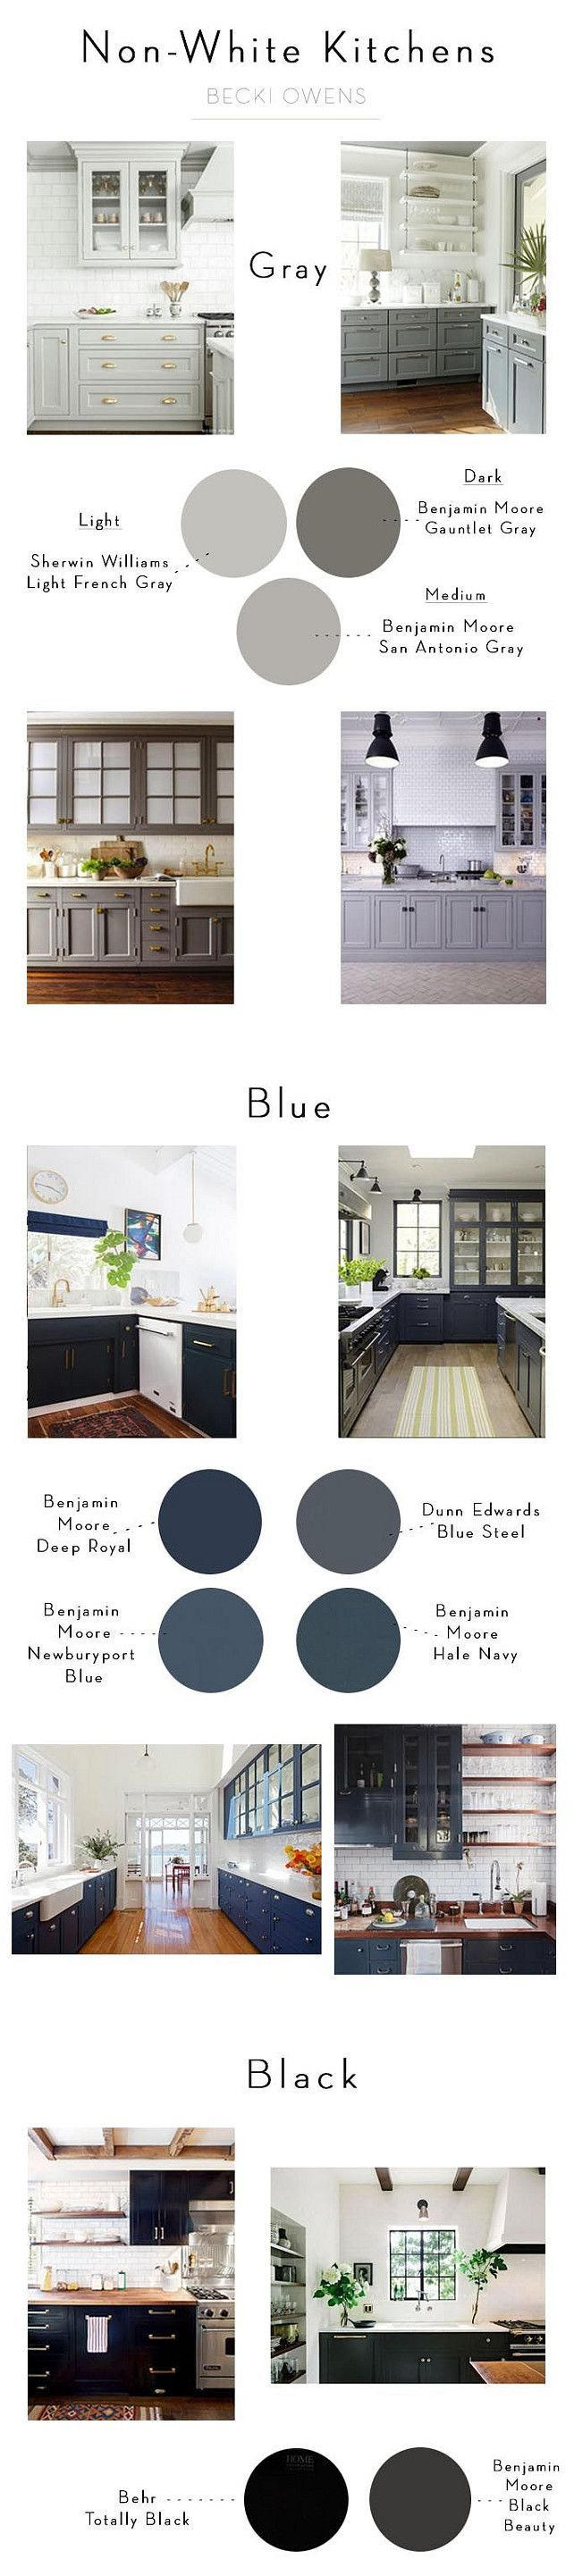 Non-White Kitchen Paint Colors - I would like to see a part of the wall to the dining room in a darker color.